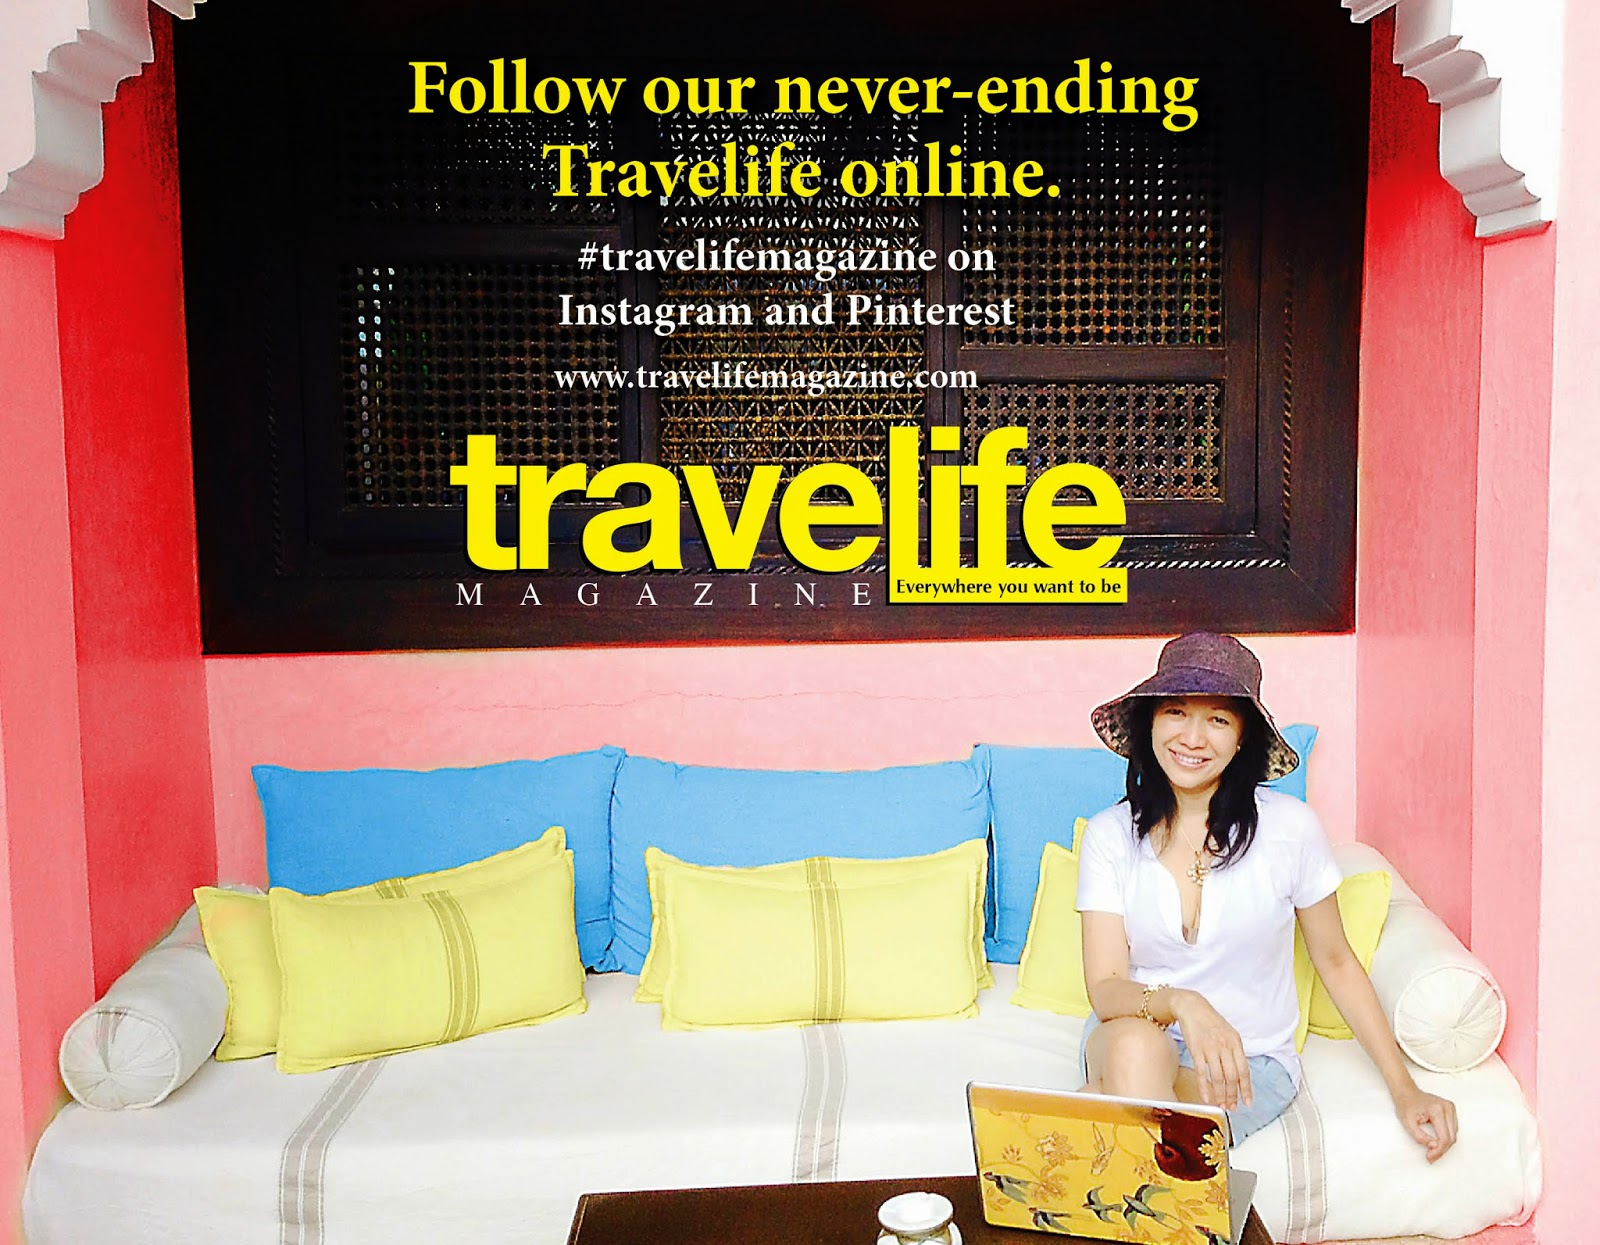 Christine Cunanan, publisher of Travelife Magazine, the leading travel and lifestyle magazine in Asia